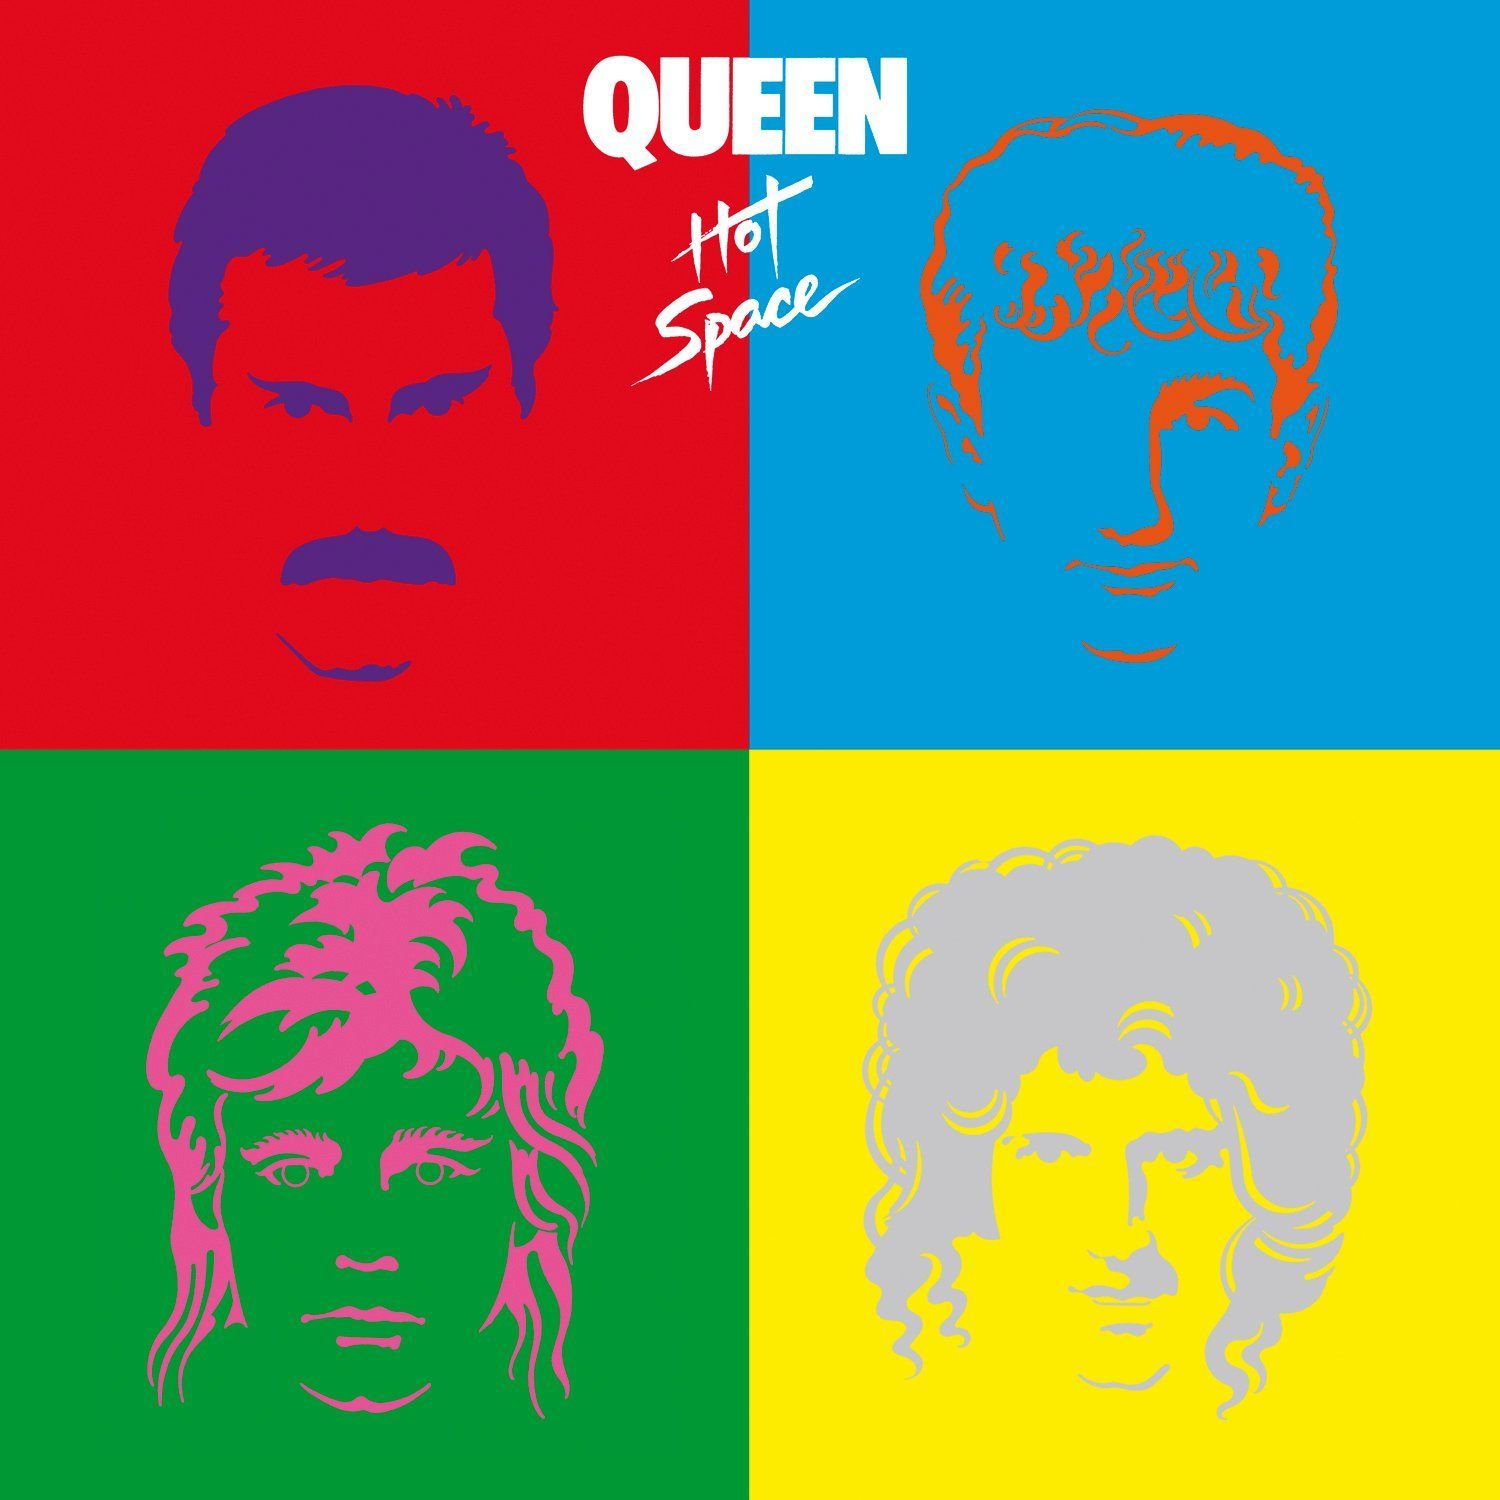 Queen Hot Space 1982